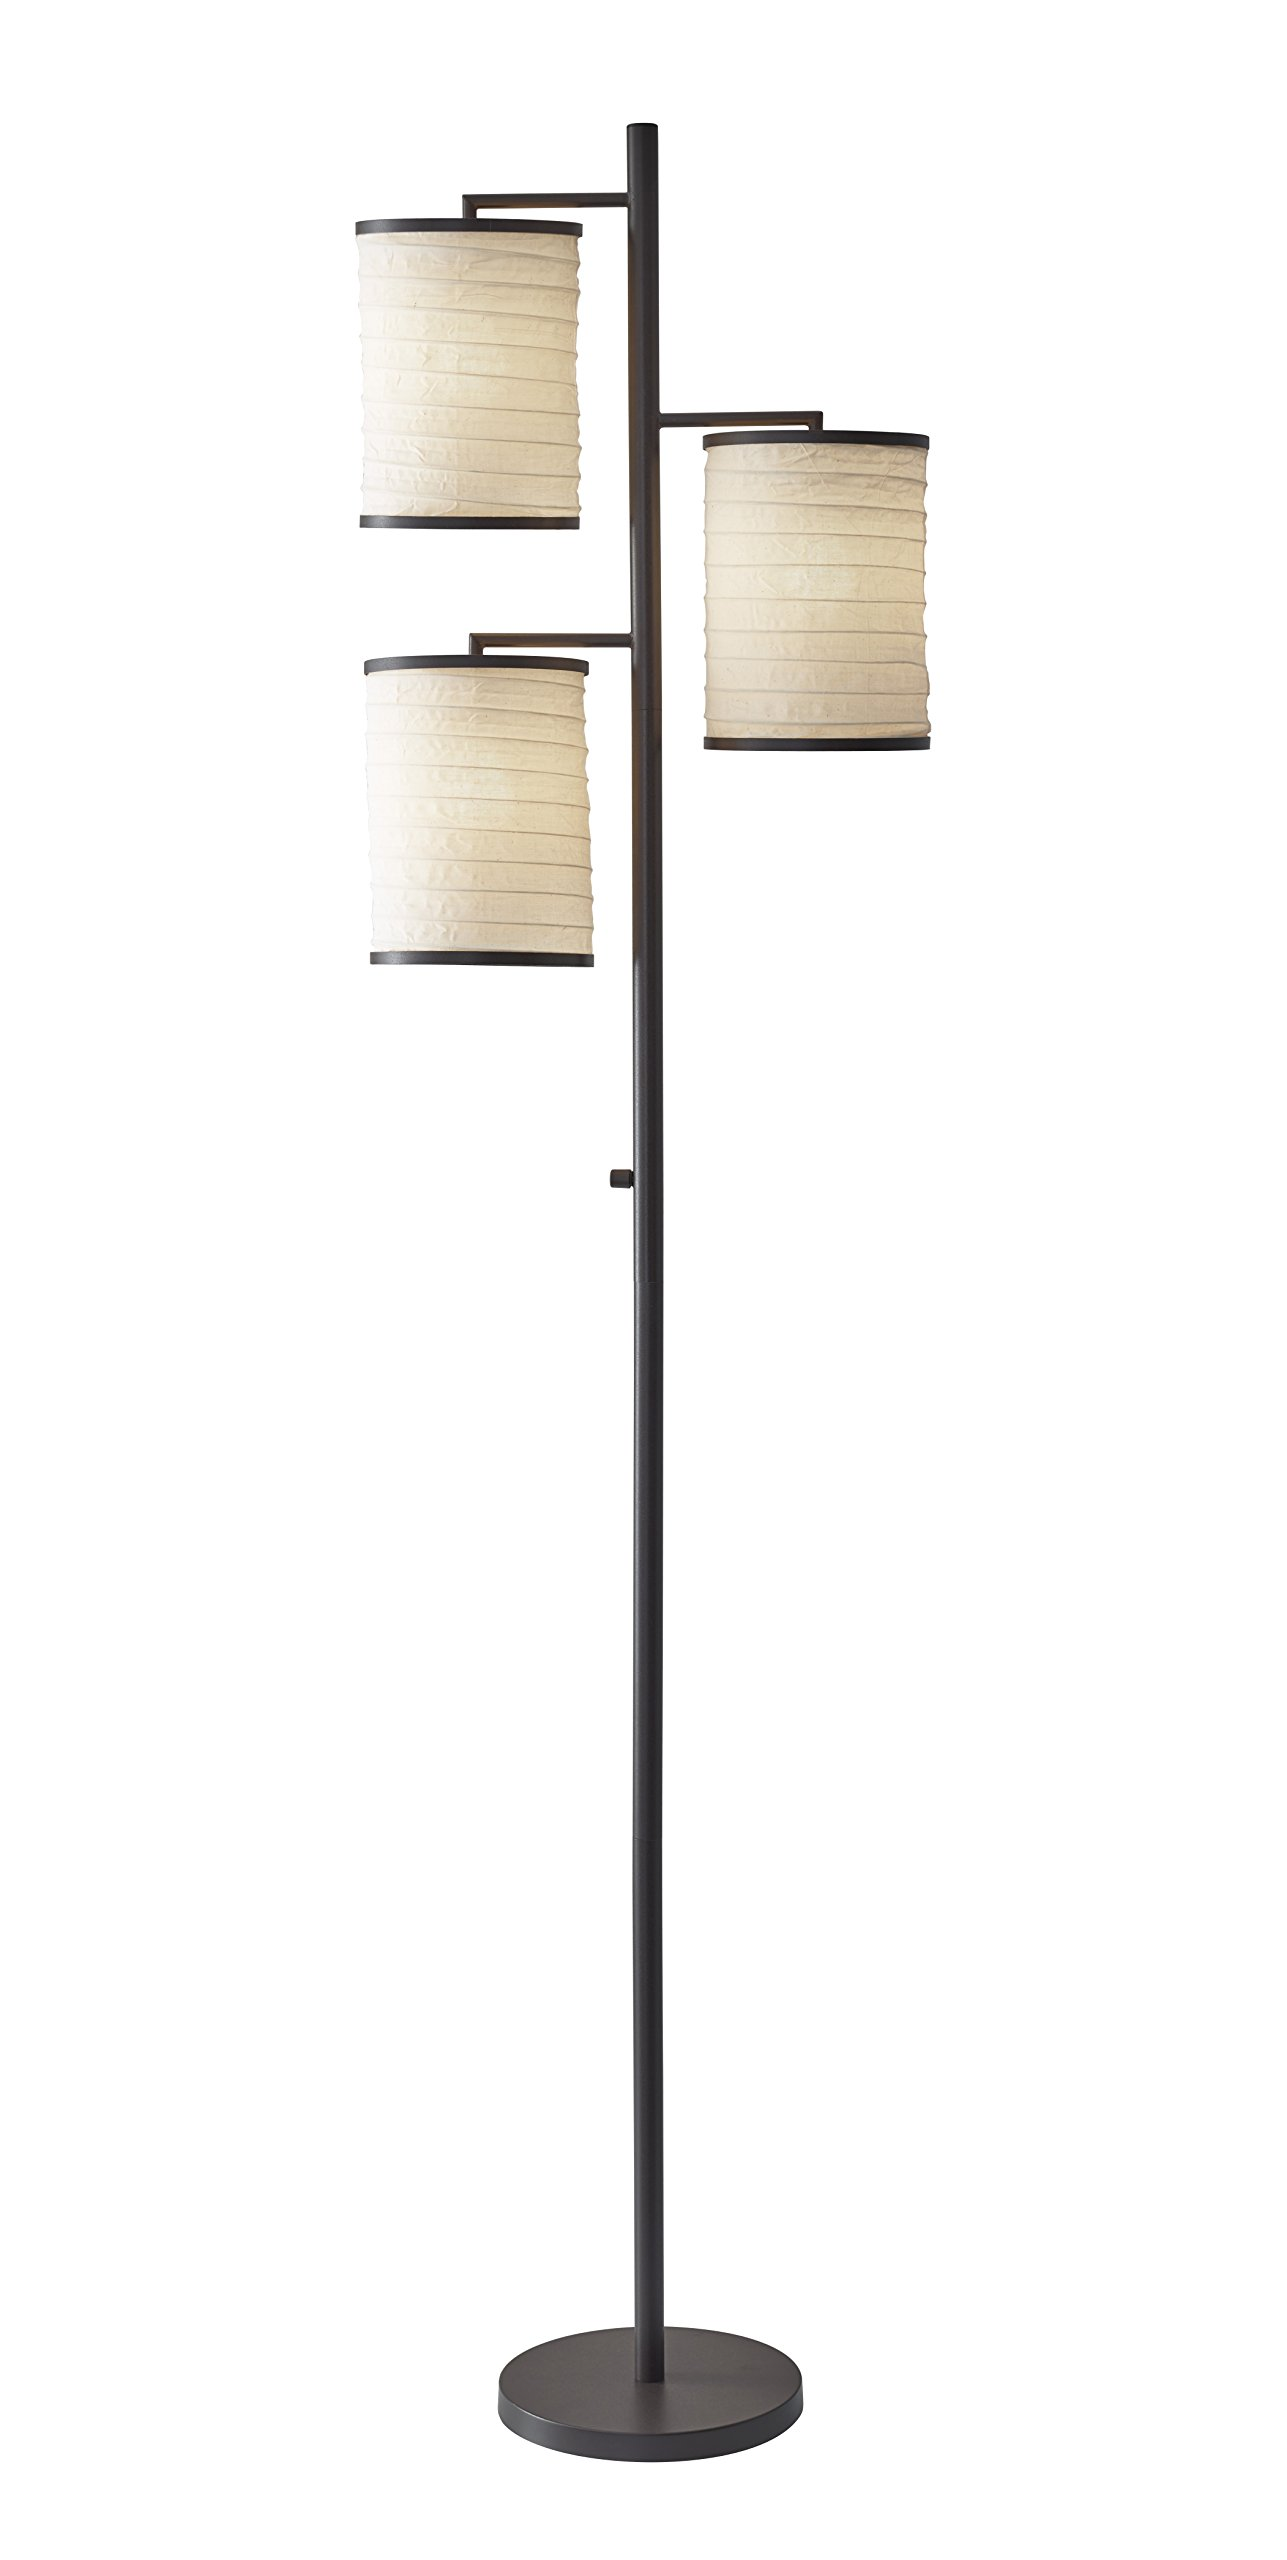 Adesso 4152-26 Bellows 74 In. Tree Lamp - Decorative Lighting Fixture with 3 Lights, Smart Outlet Compatible Lamp. Home Improvement Accessories by Adesso